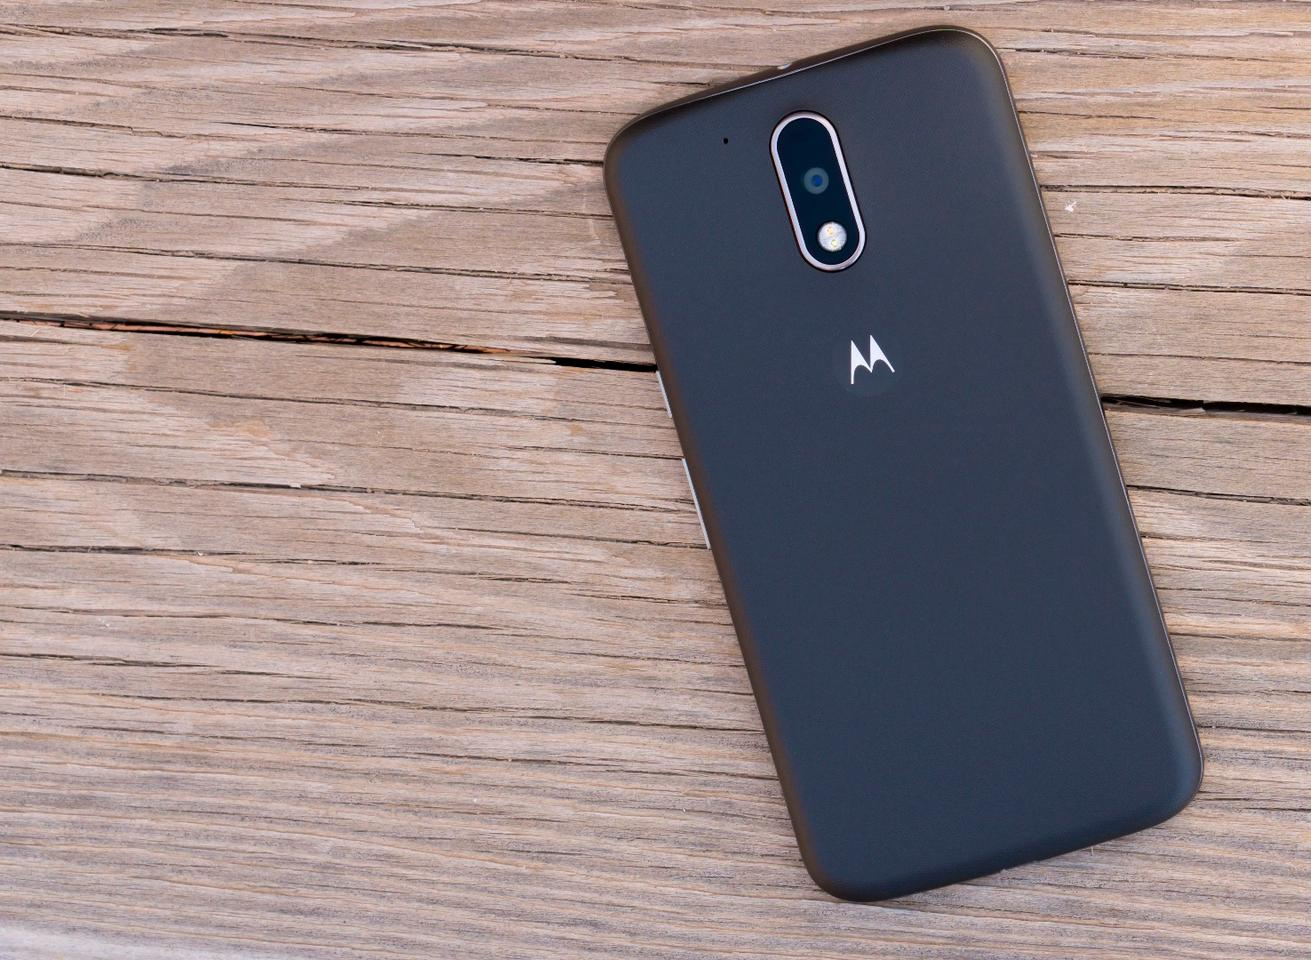 The phones' build is attractive and comfortable in hand